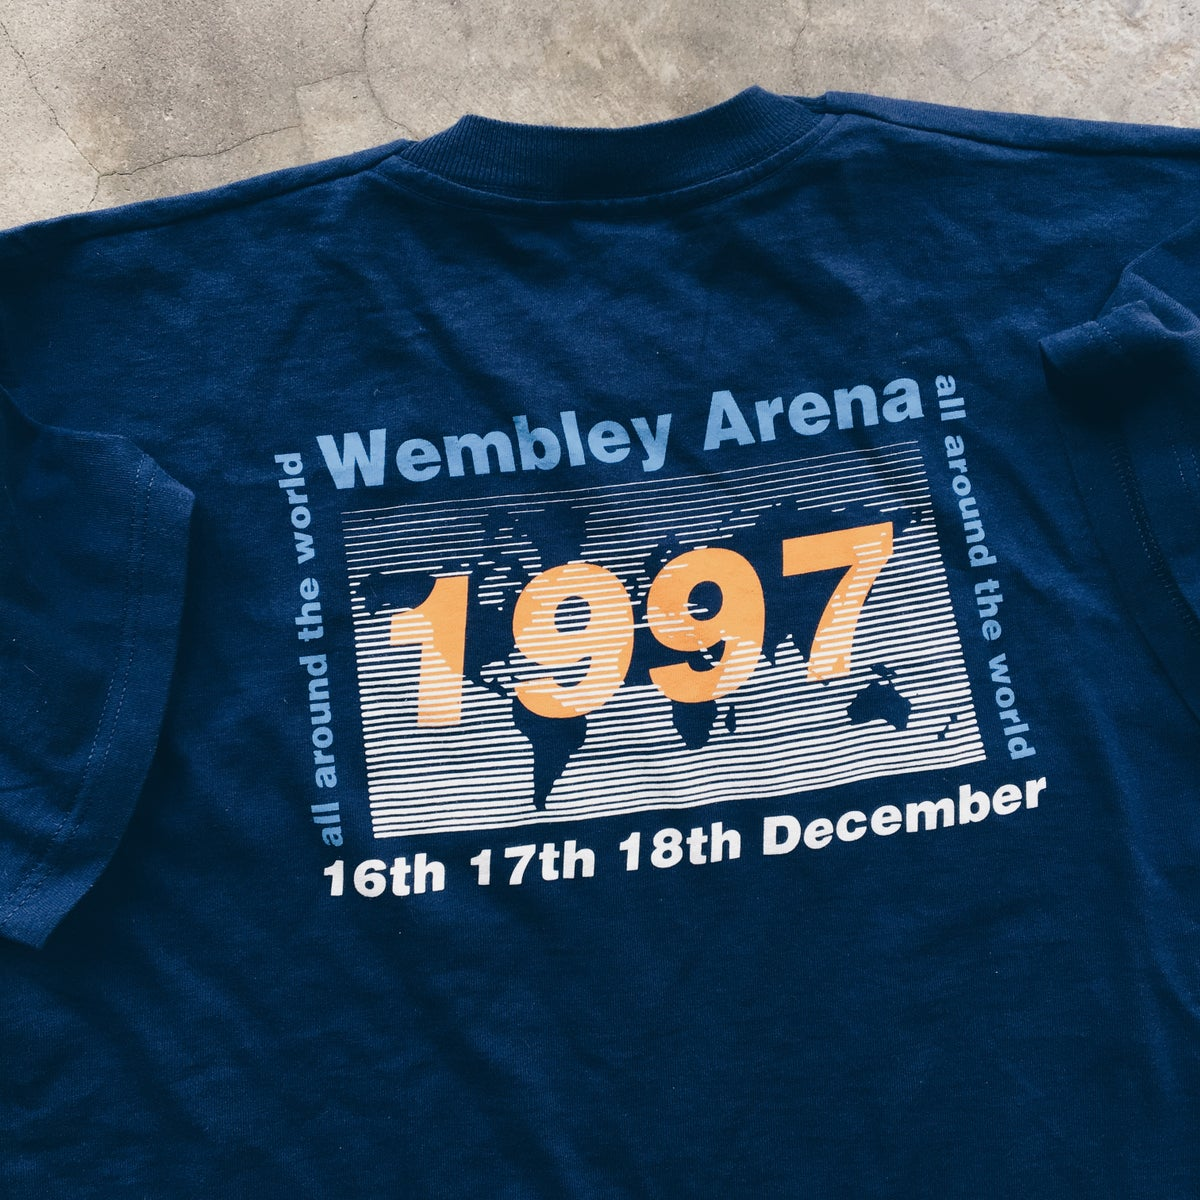 Image of Original 1997 Oasis Wembley Tee.